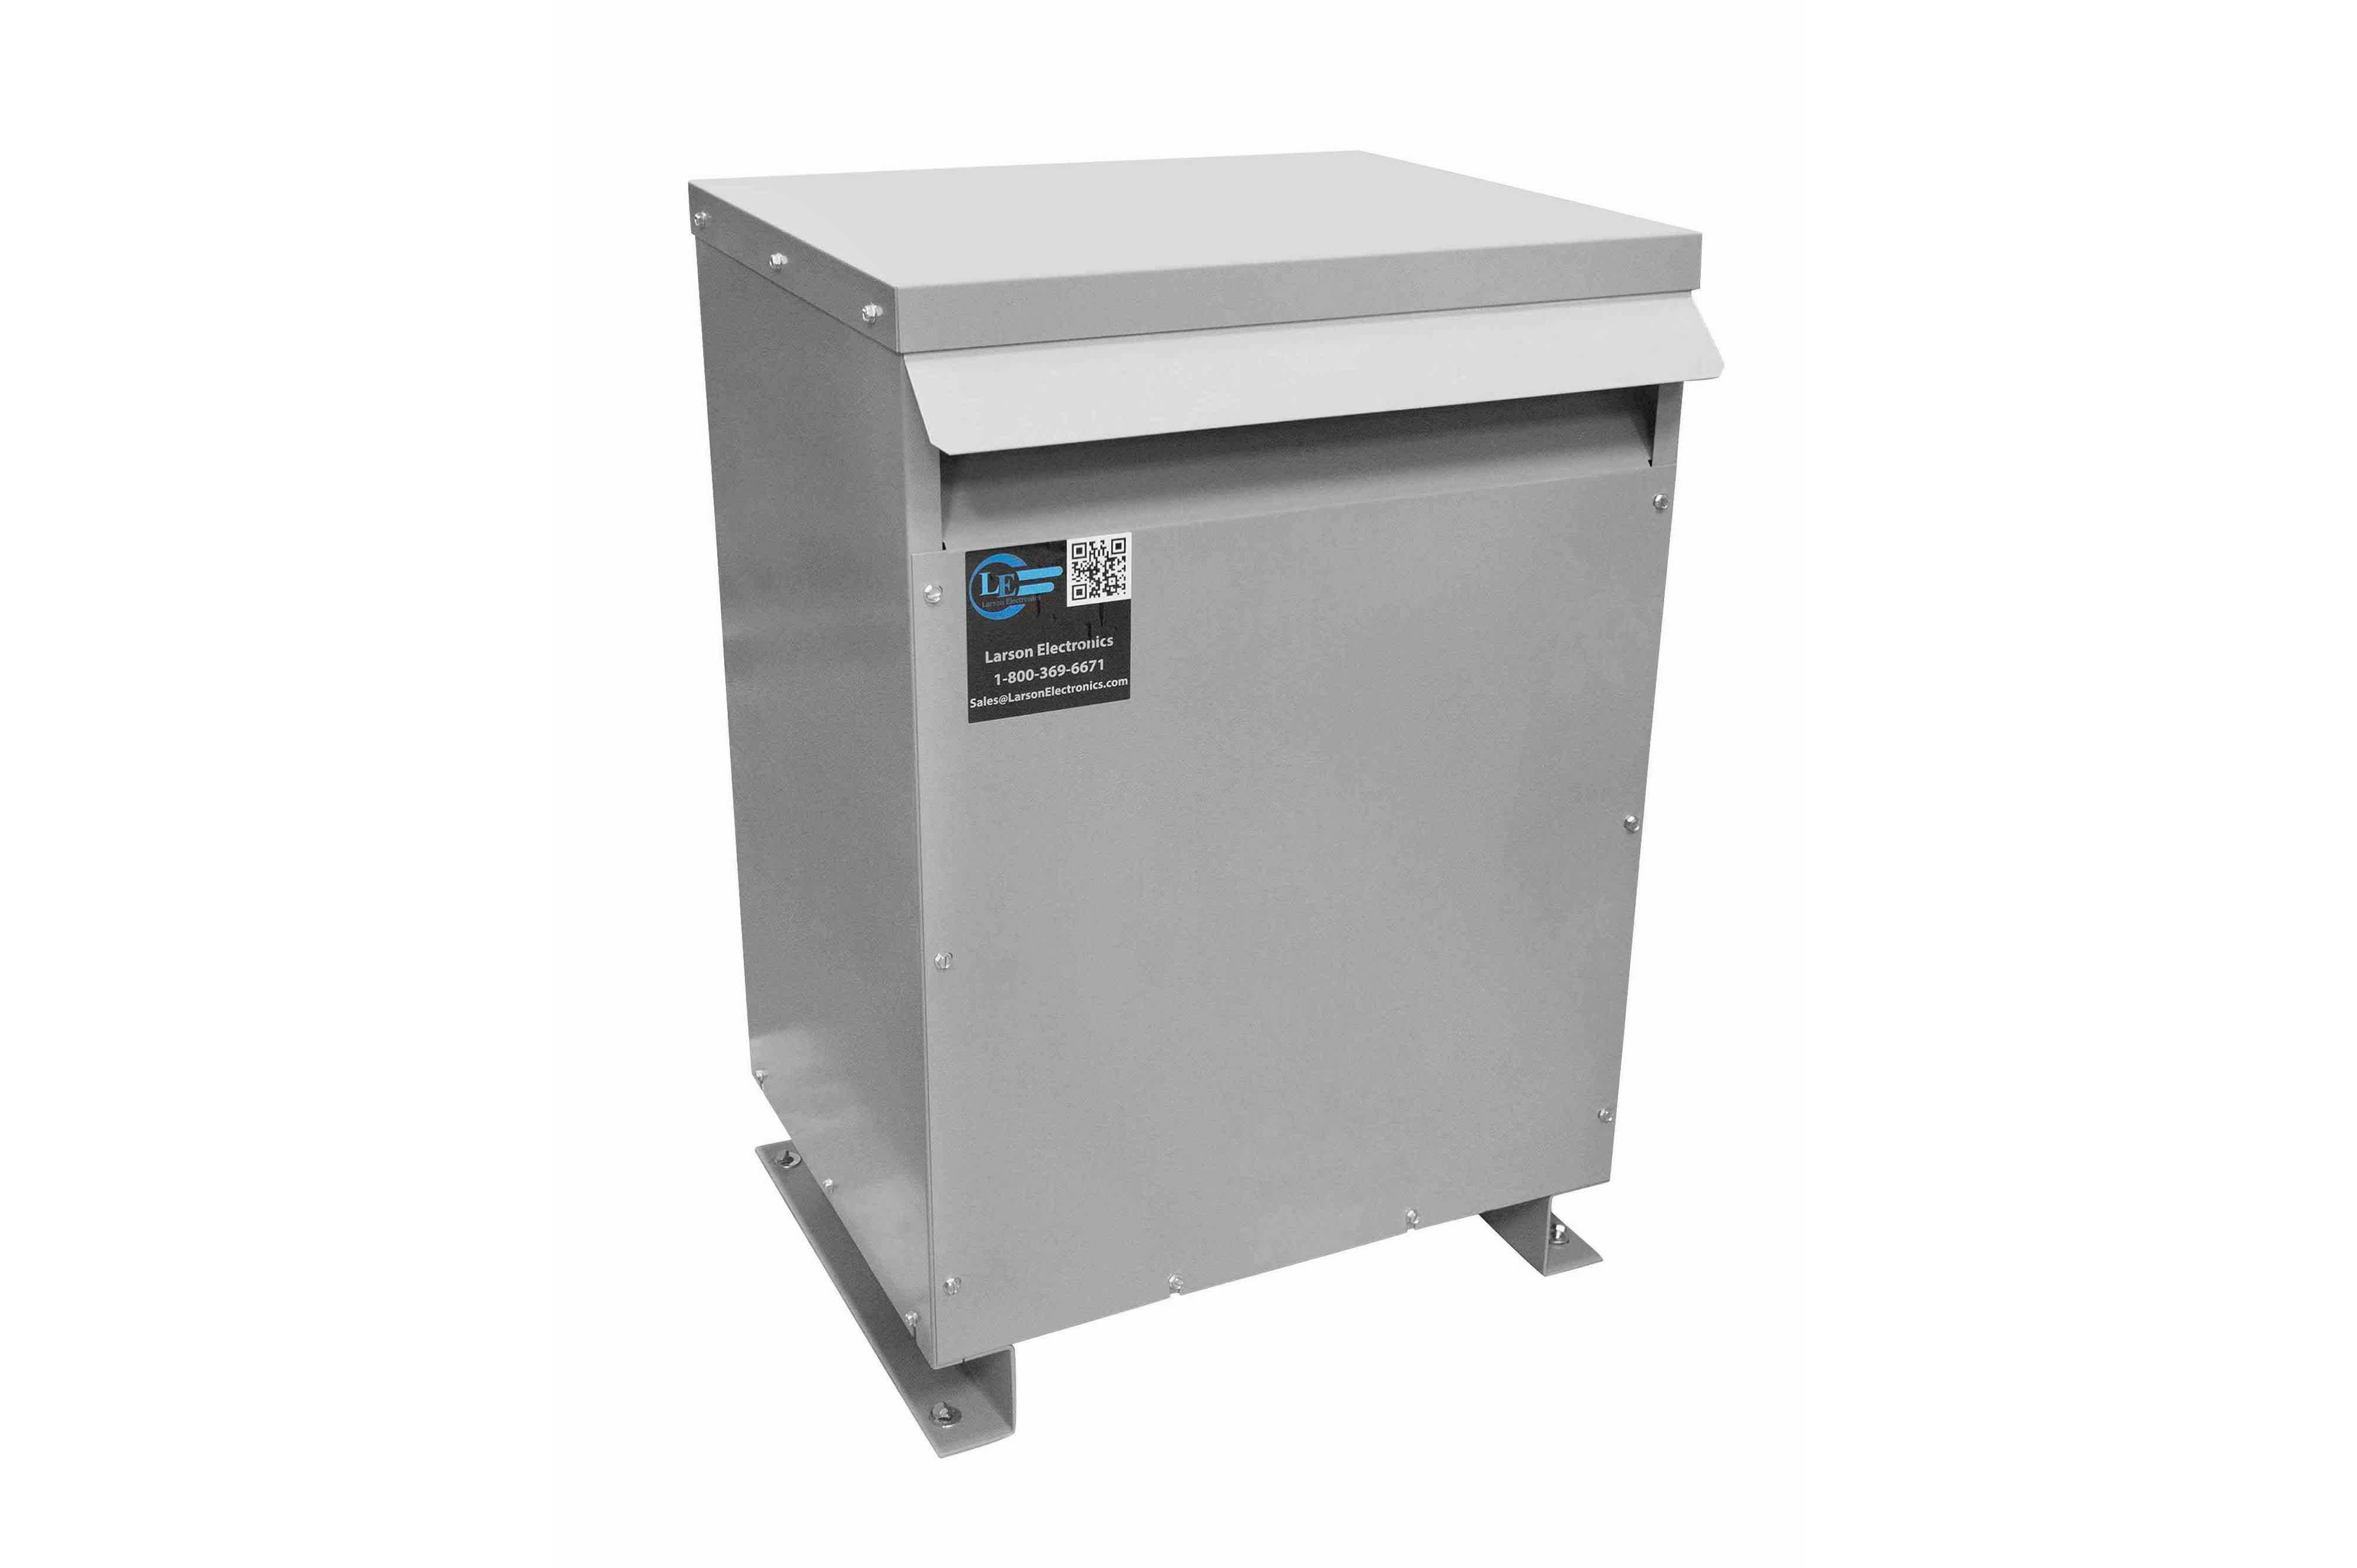 11 kVA 3PH Isolation Transformer, 480V Delta Primary, 480V Delta Secondary, N3R, Ventilated, 60 Hz